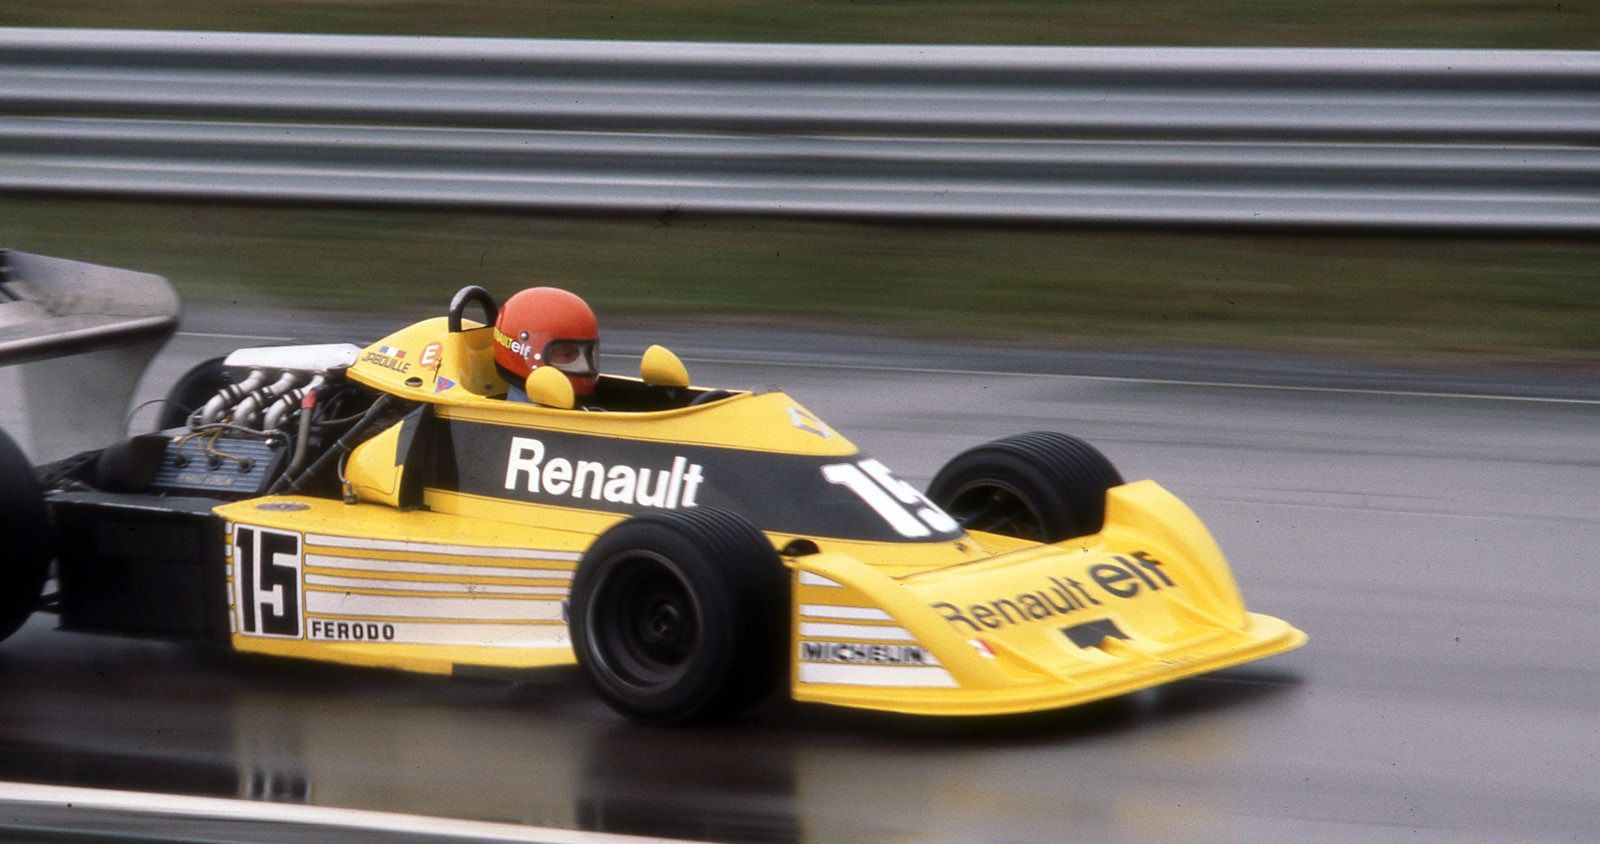 jean pierre jabouille renault rs01 1977 us gp 1600x844 motorsport pinterest grand prix. Black Bedroom Furniture Sets. Home Design Ideas